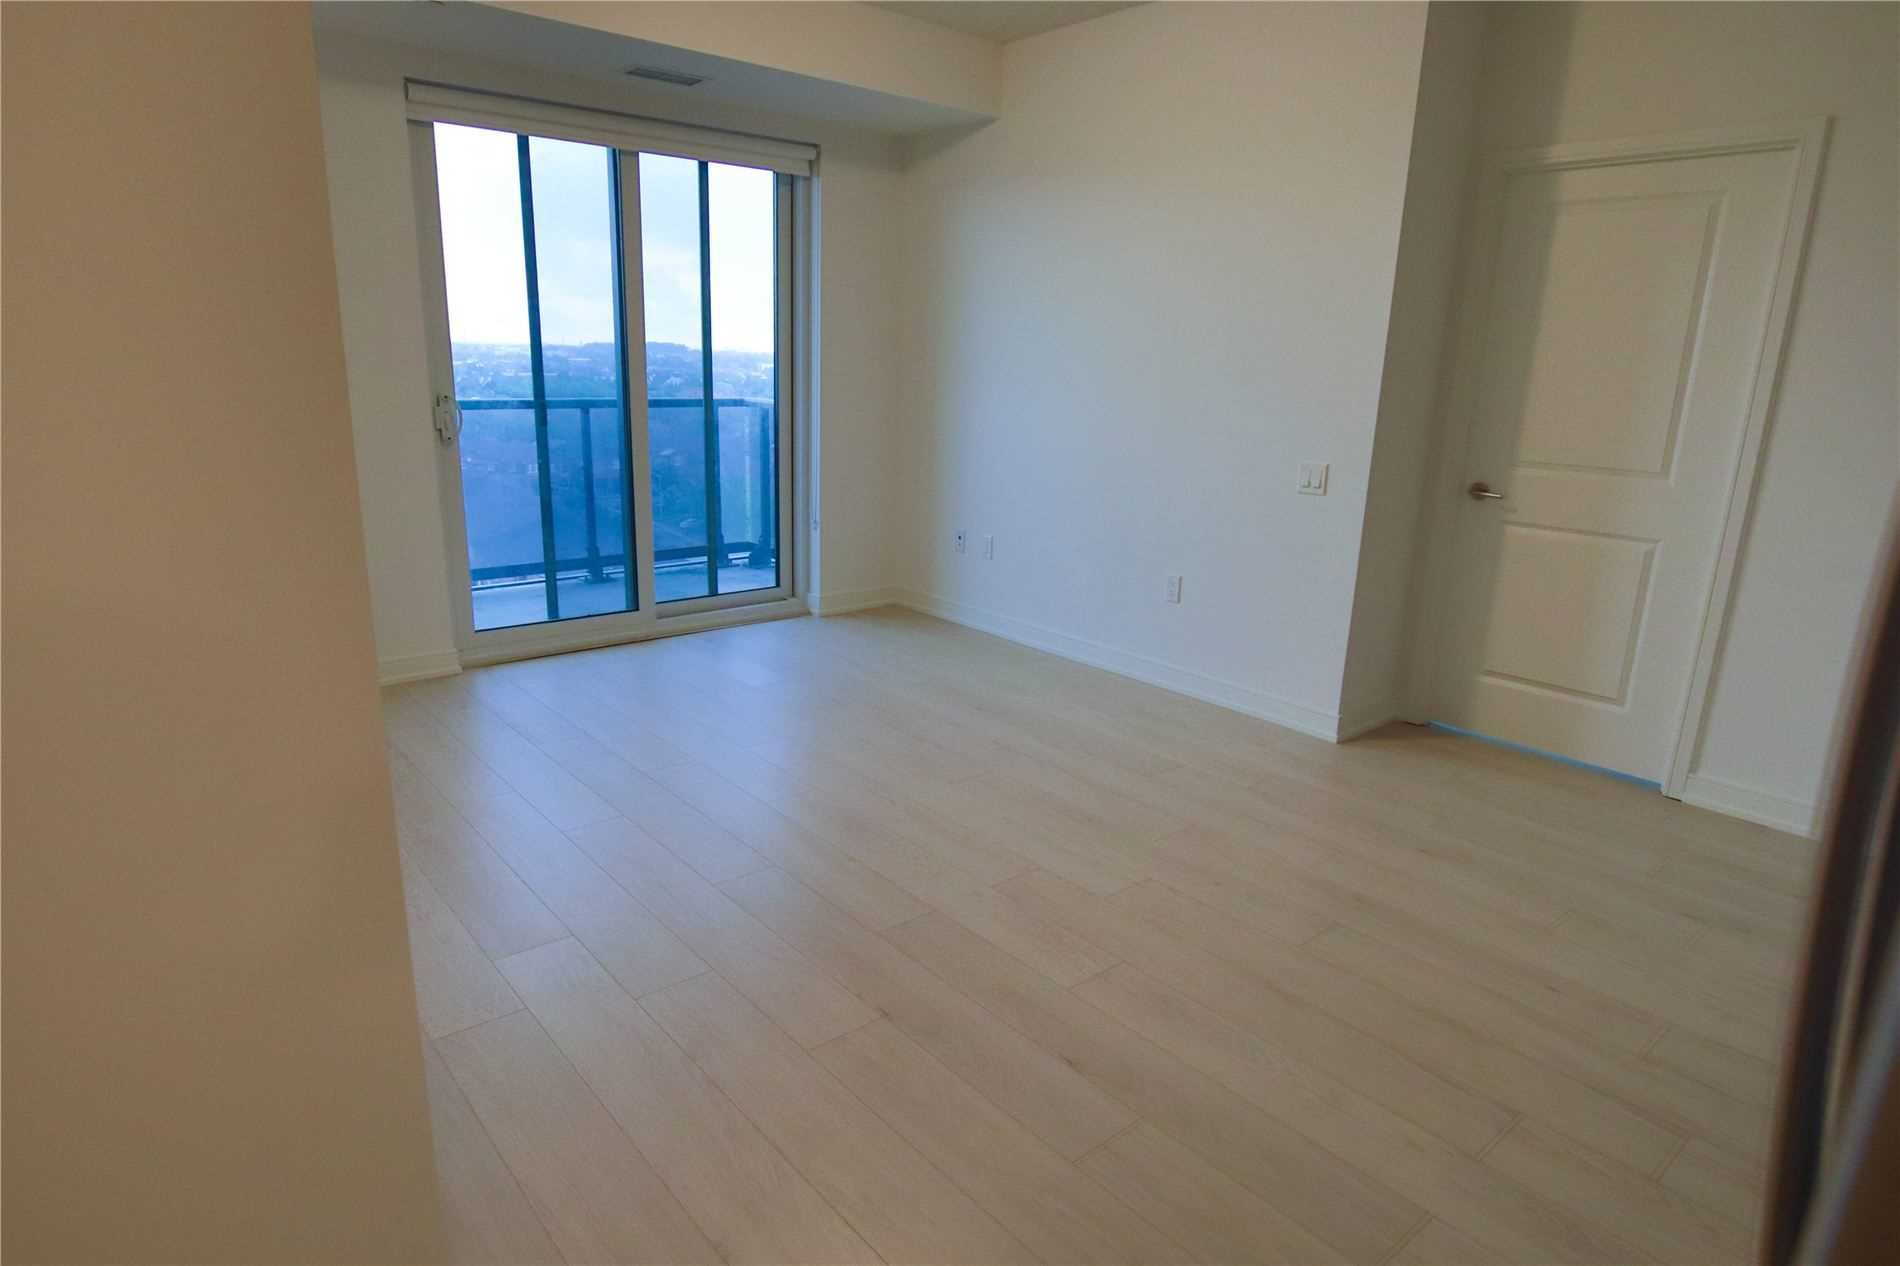 8 Nahani Way, unit 1103 for rent in Toronto - image #2